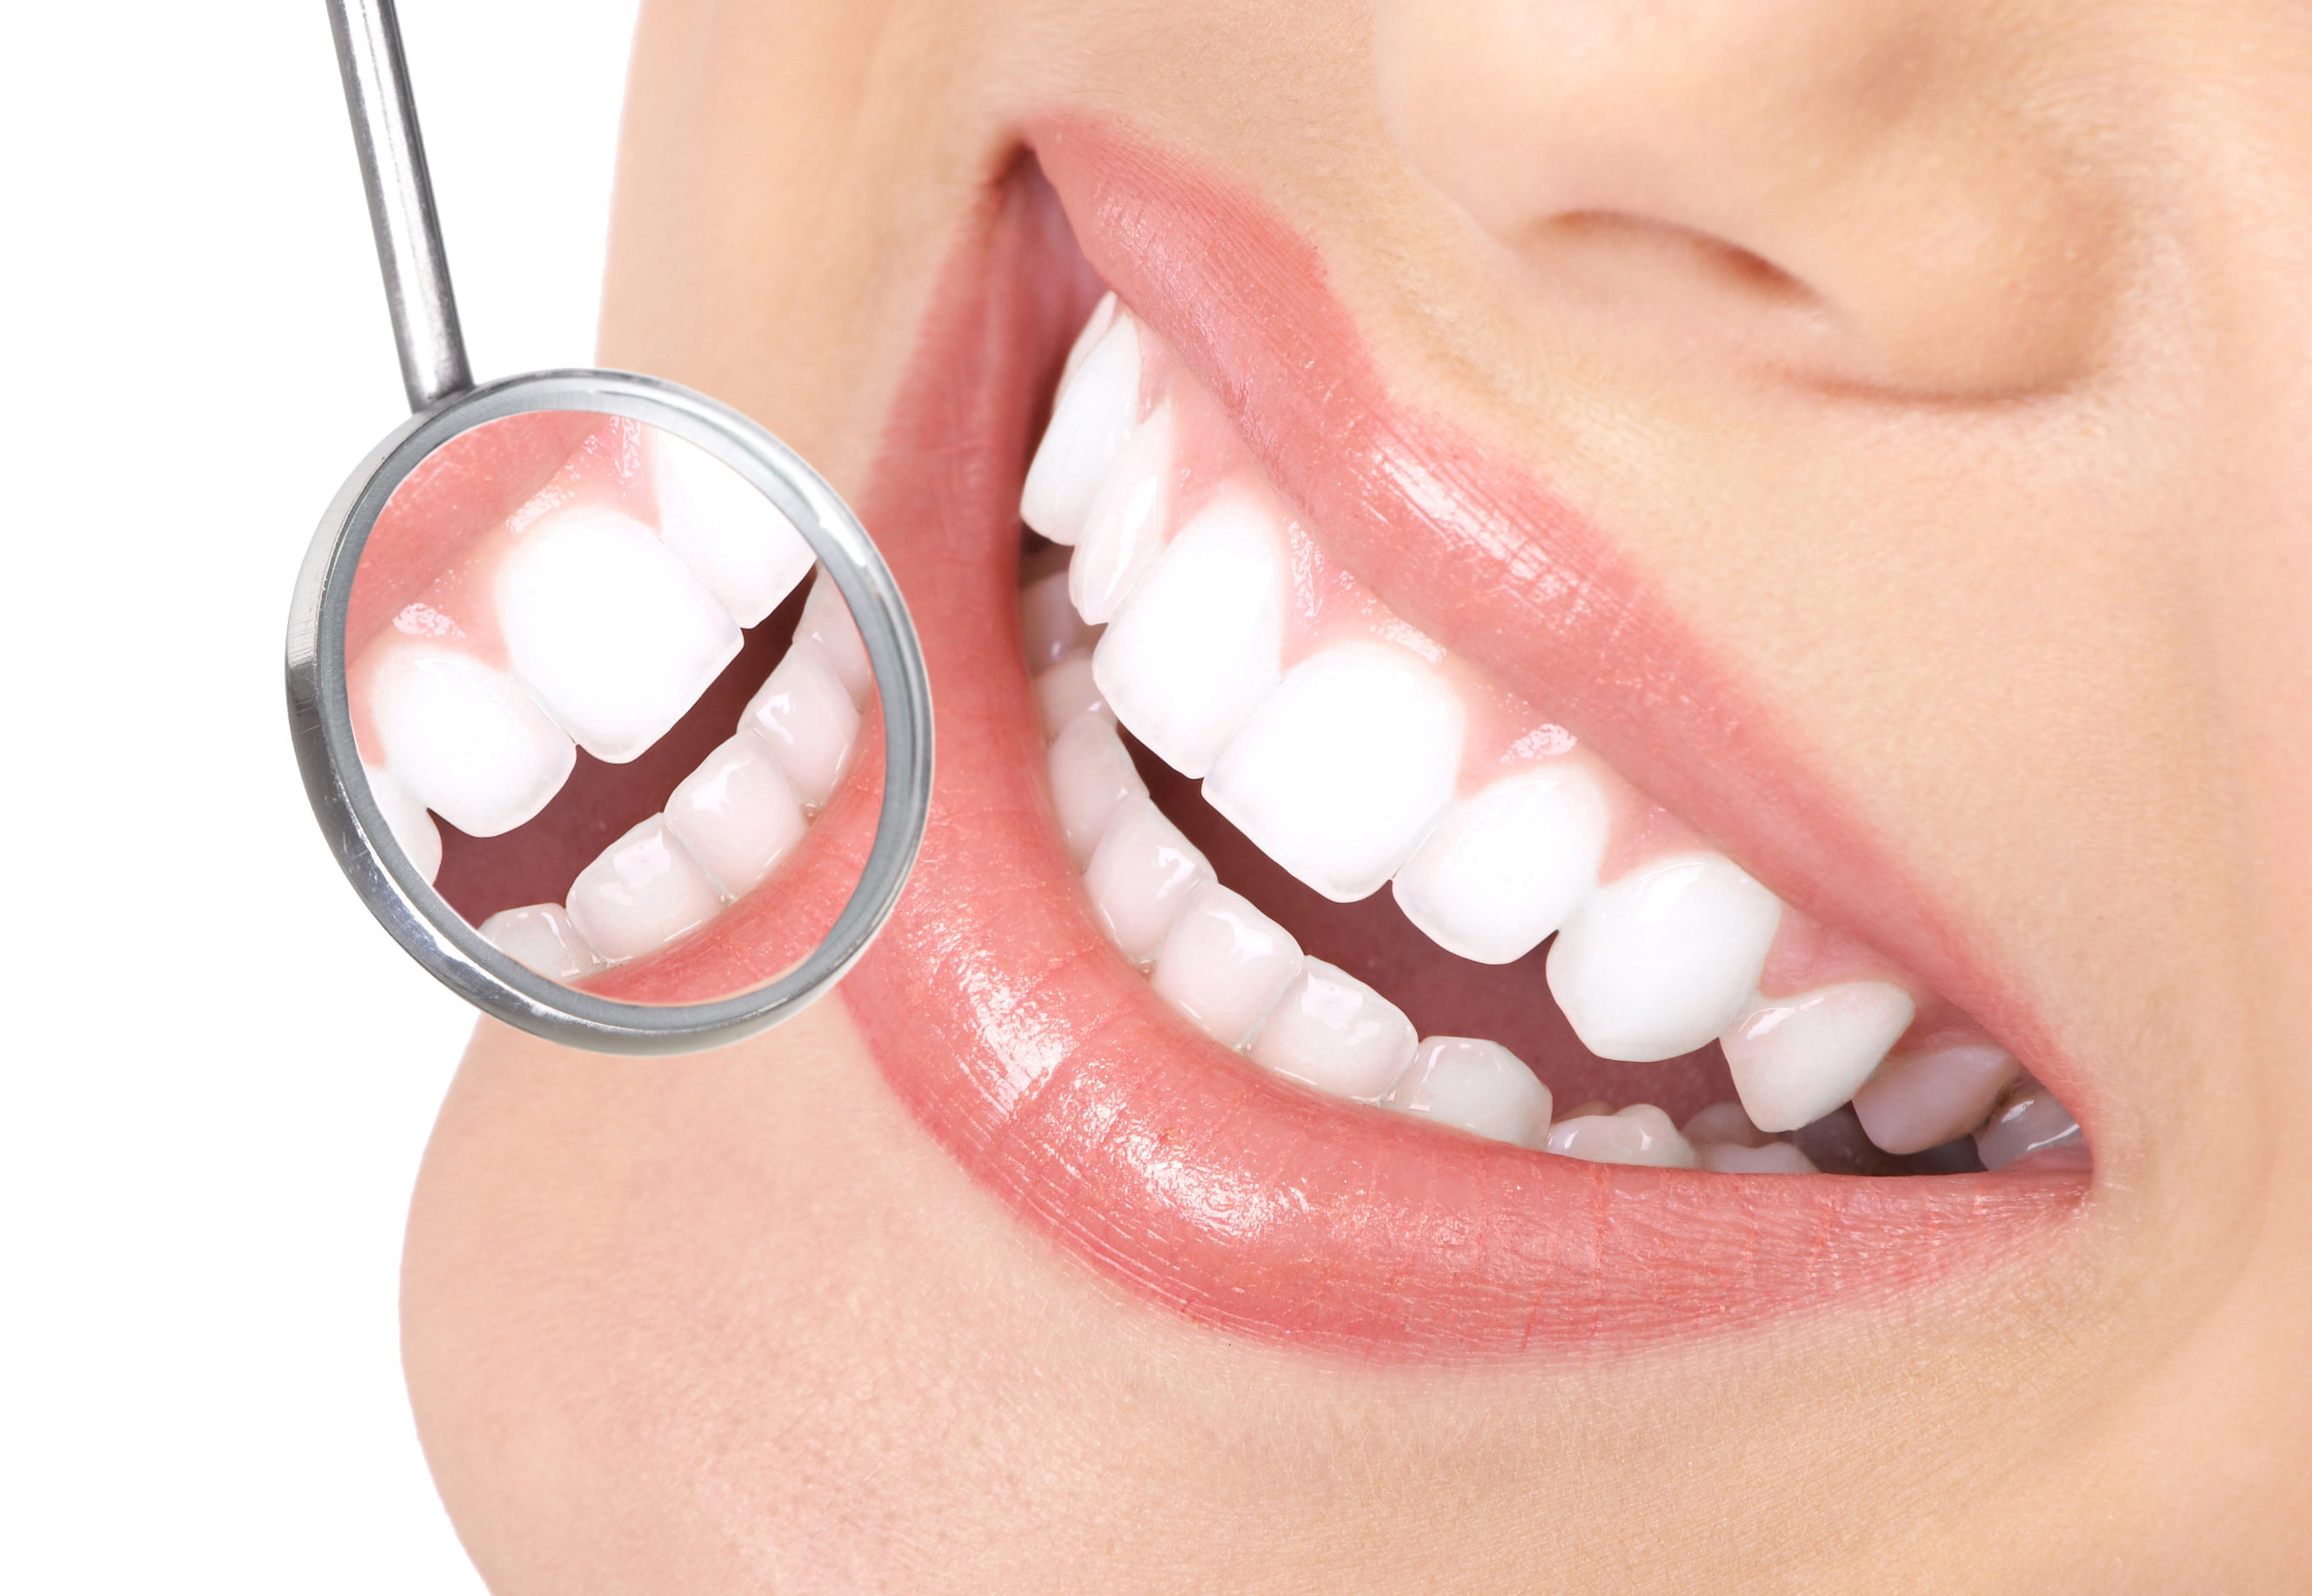 Low Cost Affordable Full Coverage Dental Insurance